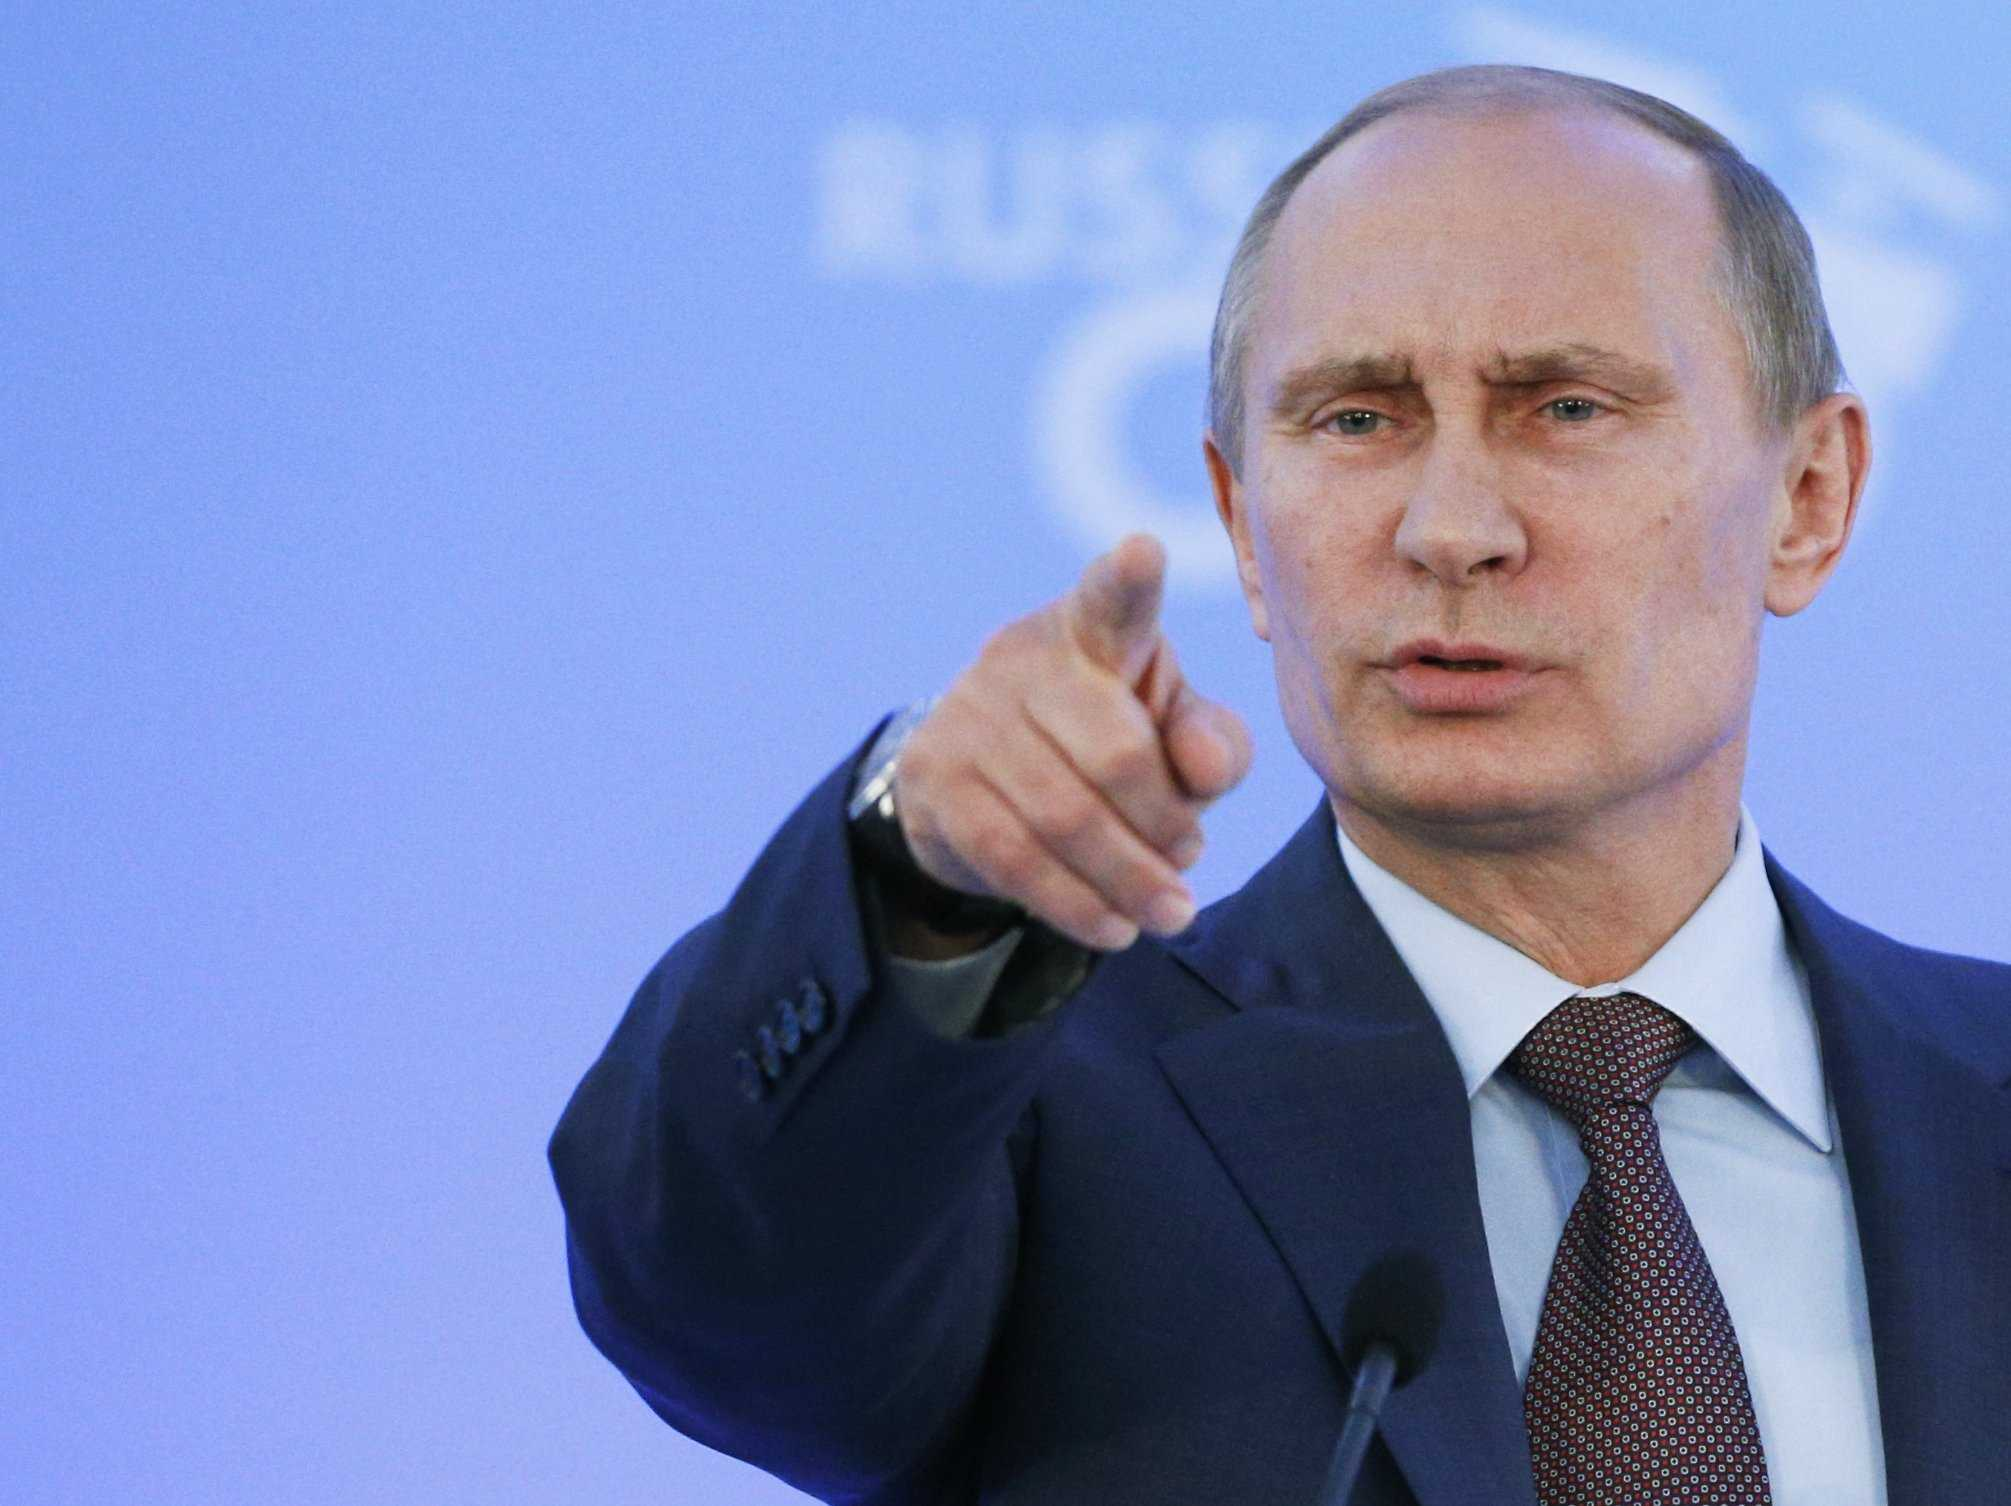 vladimir-putin-calls-out-american-exceptionalism-in-intense-nyt-op-ed